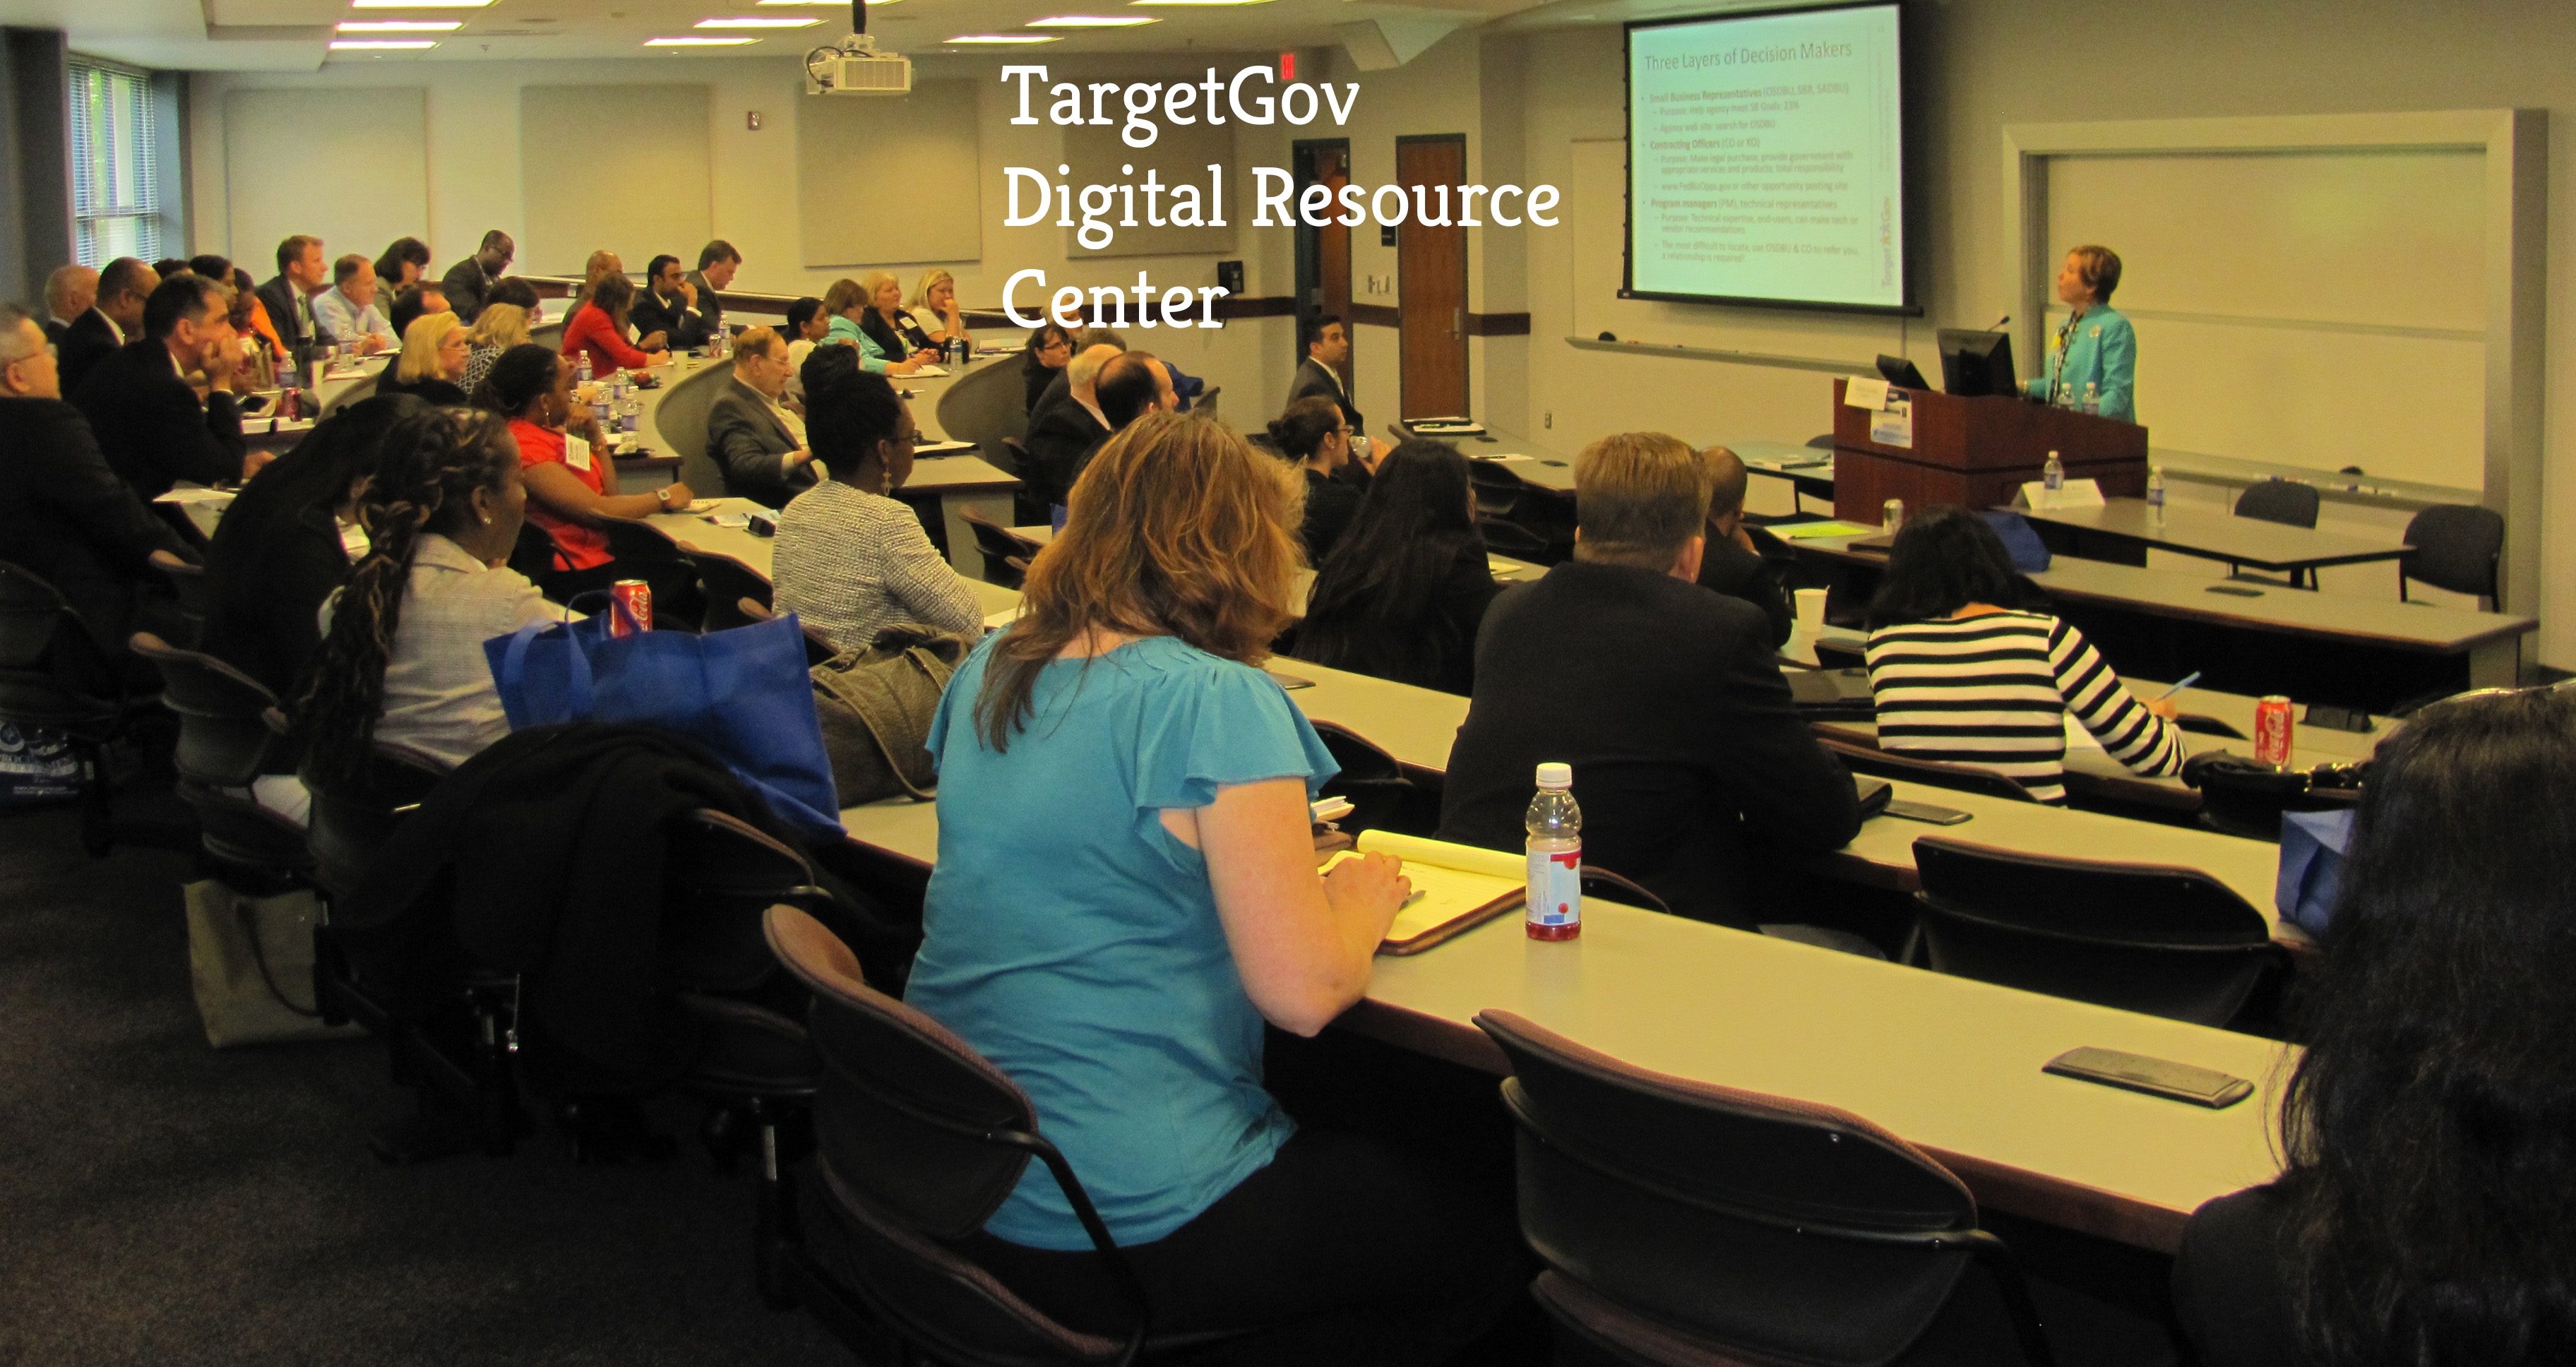 TargetGov Digital Resource Center